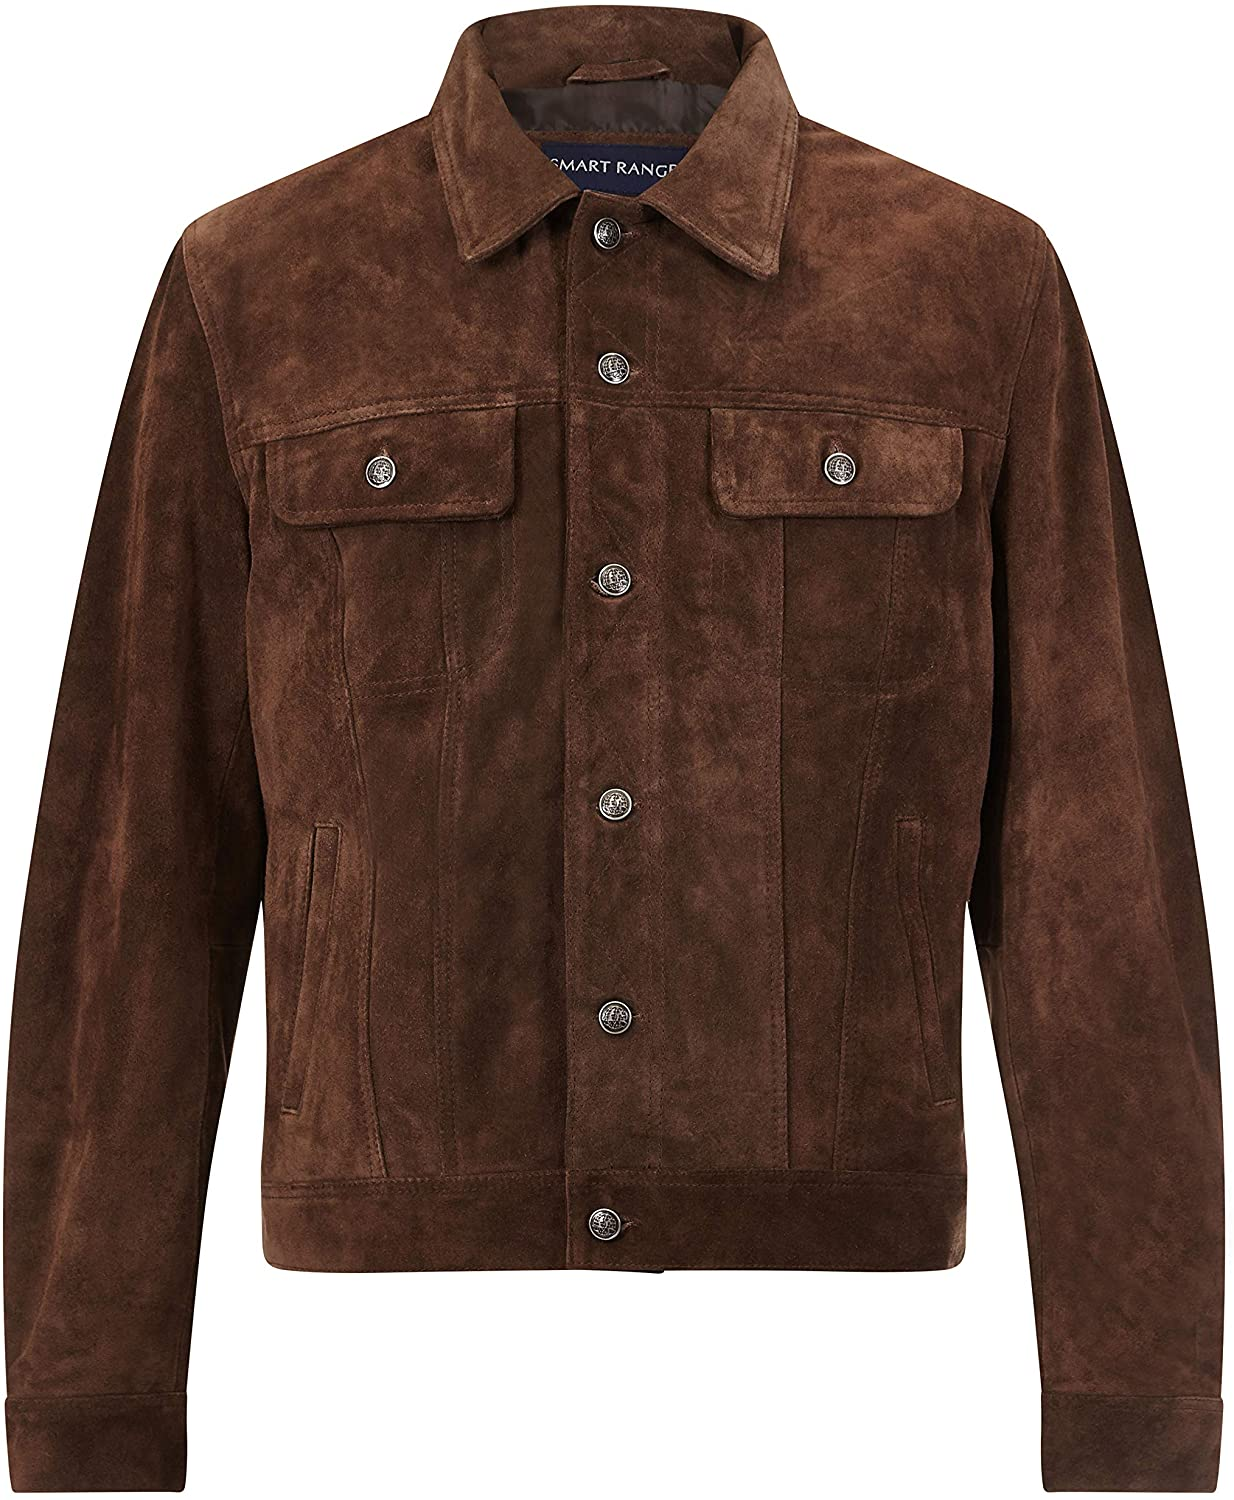 Trucker' New Men's Brown Suede Classic Real Cowhide Western Leather Jacket 1280